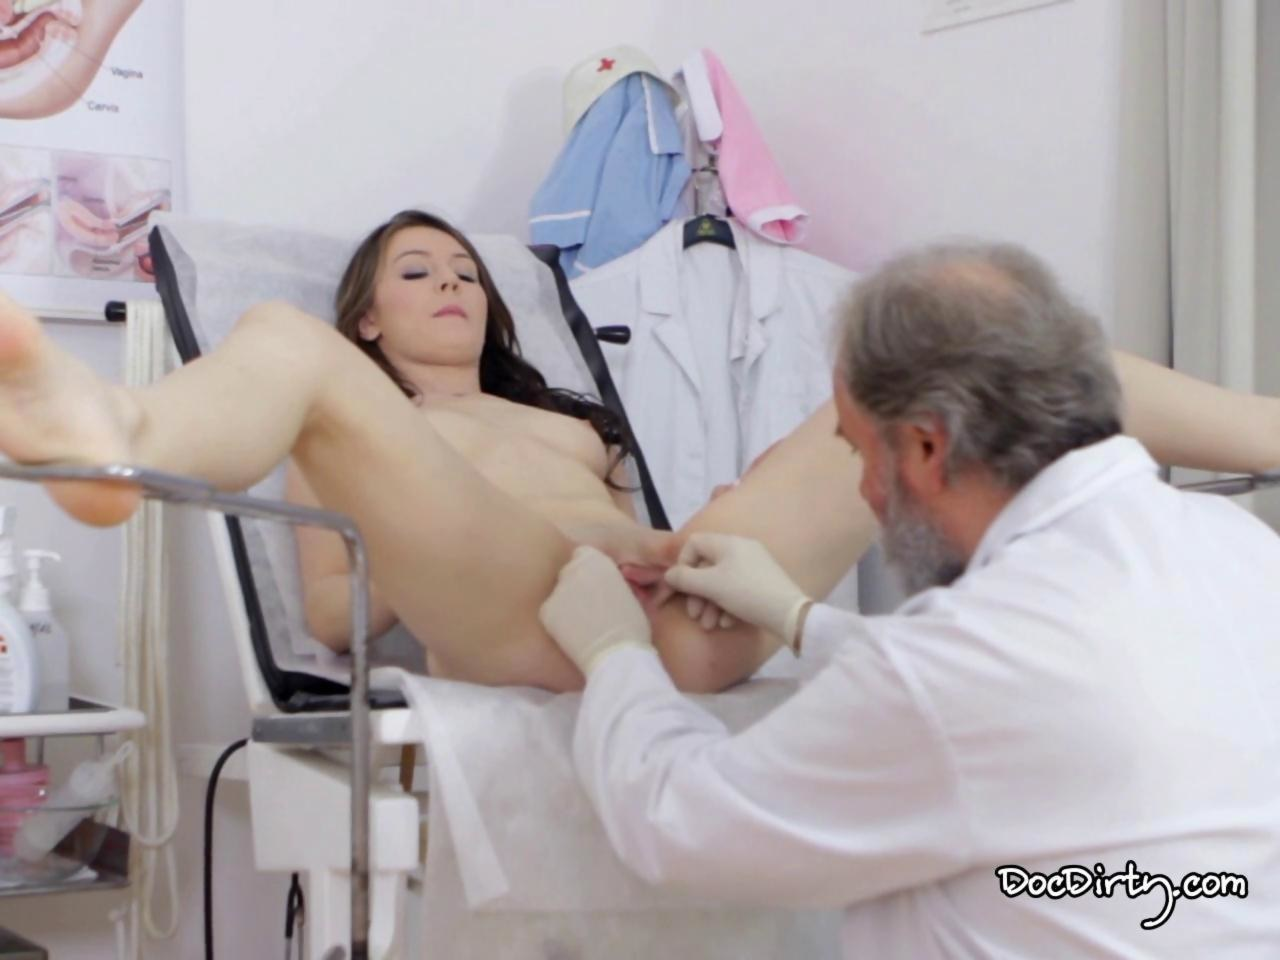 Fakehospital horny doctor gives sexy slim blonde orgasms 9